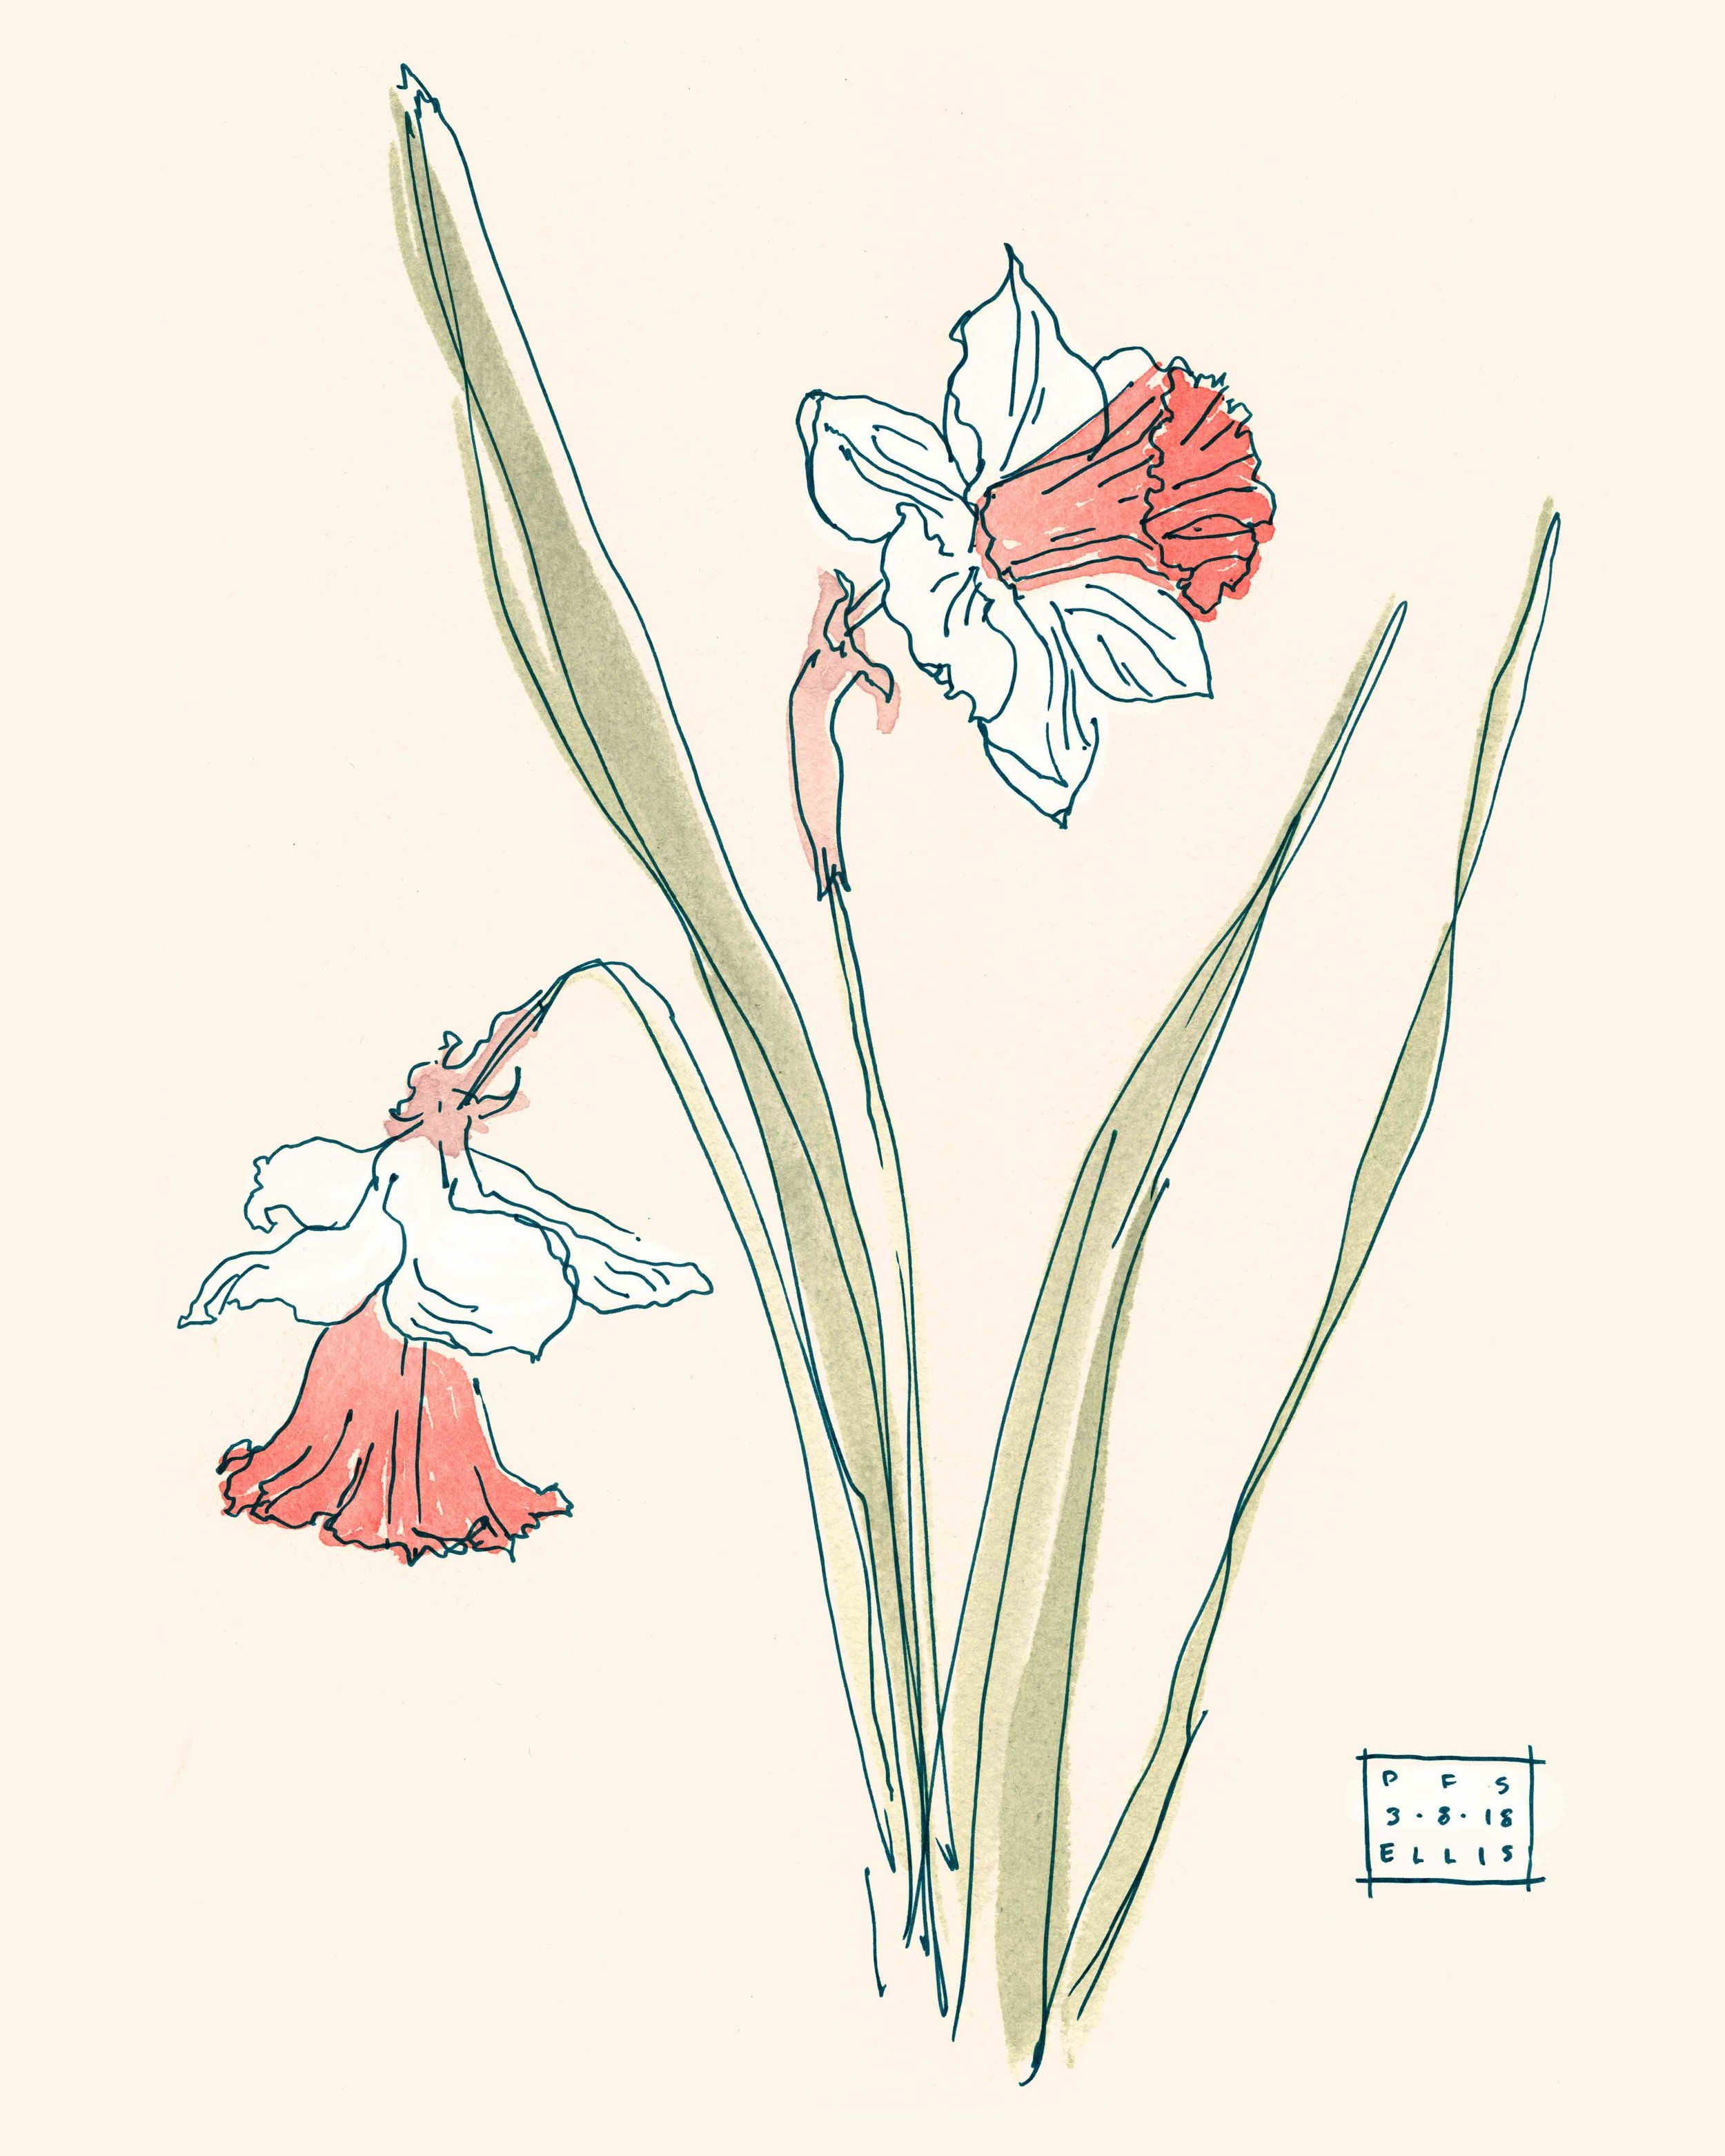 erin-ellis_Daffodil-illustration_PFS_2019-web.jpg